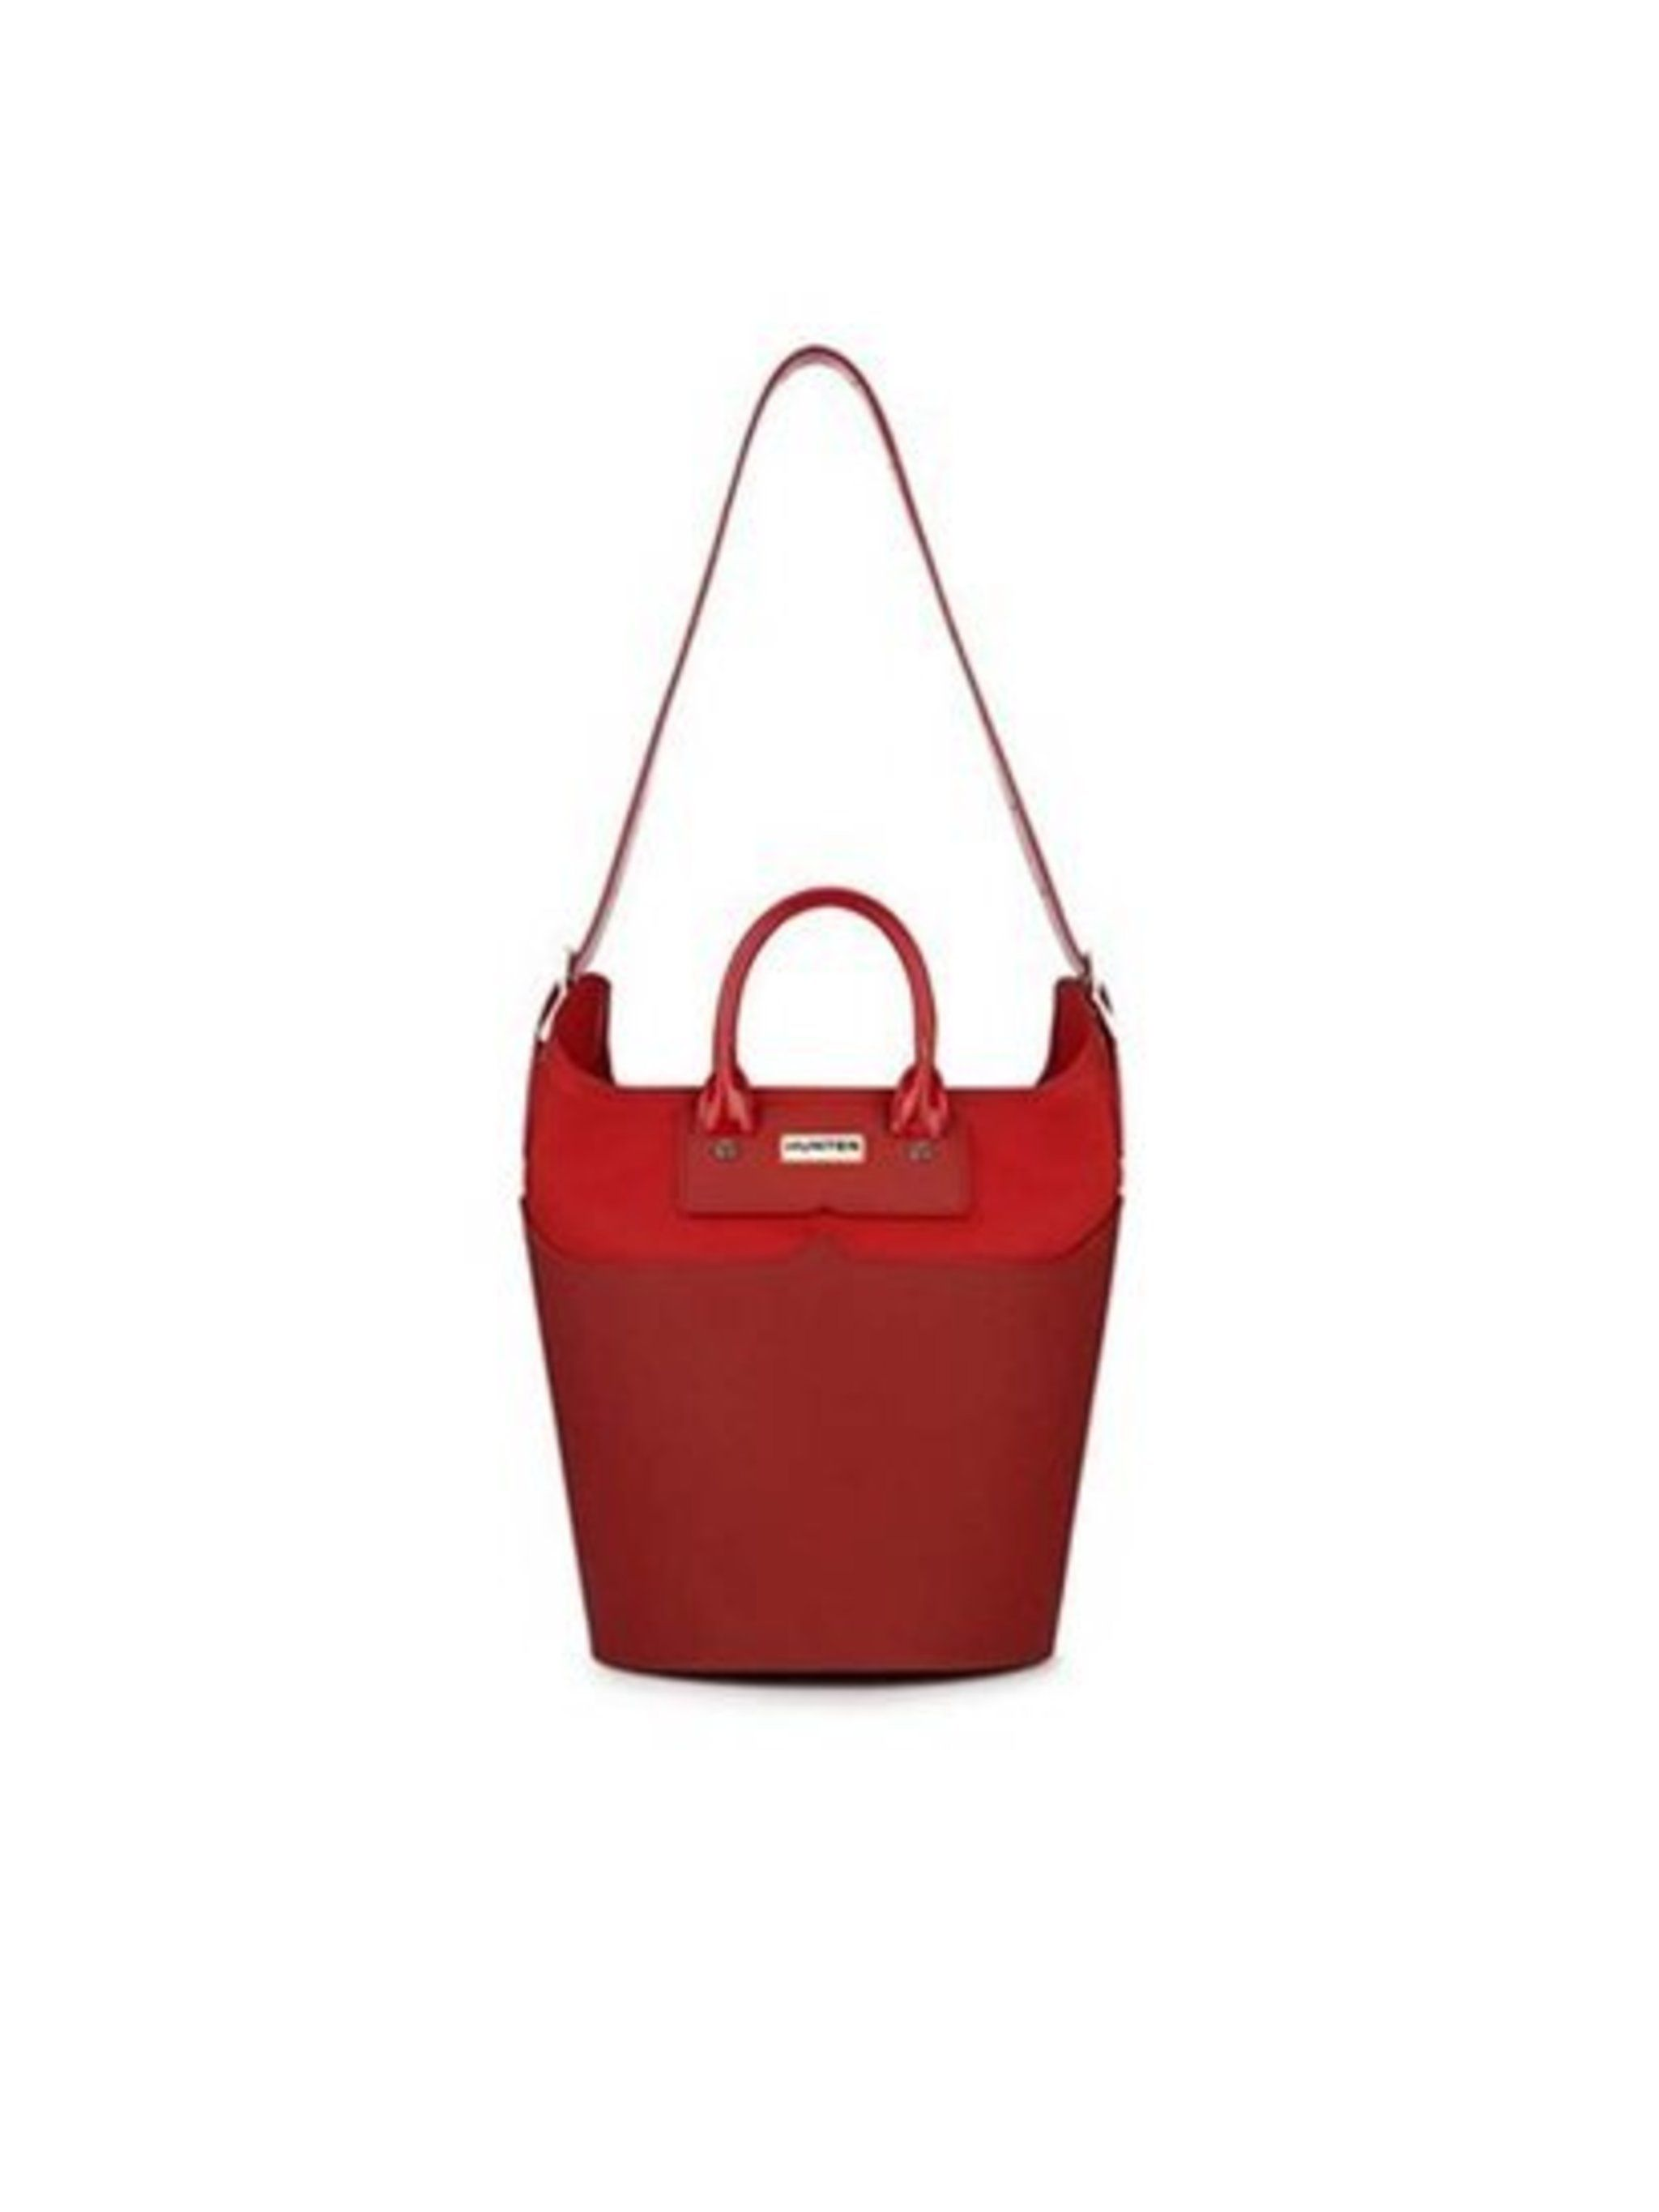 Hunter waterproof bag in military red, £220